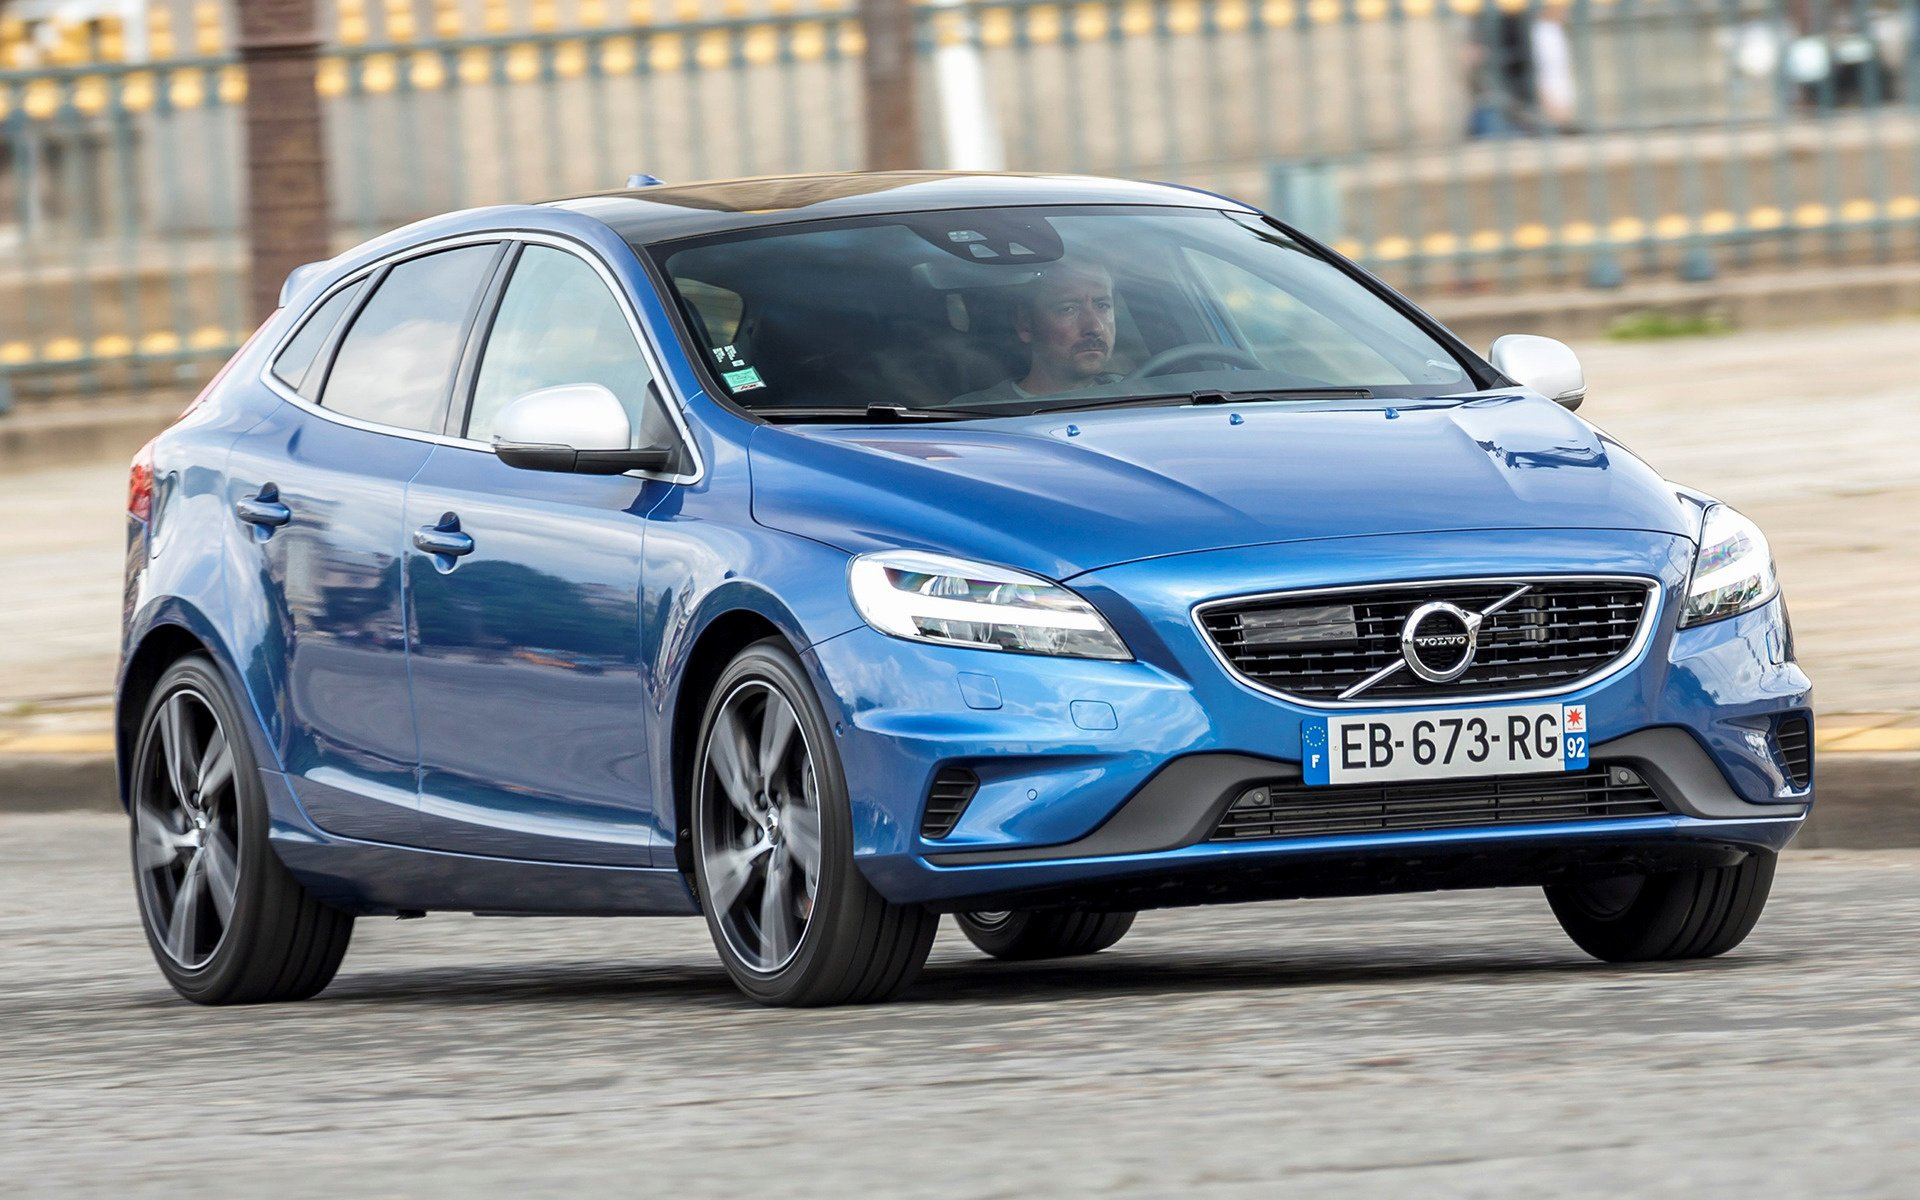 2016 Volvo V40 R Design   Wallpapers and HD Images Car Pixel 1920x1200